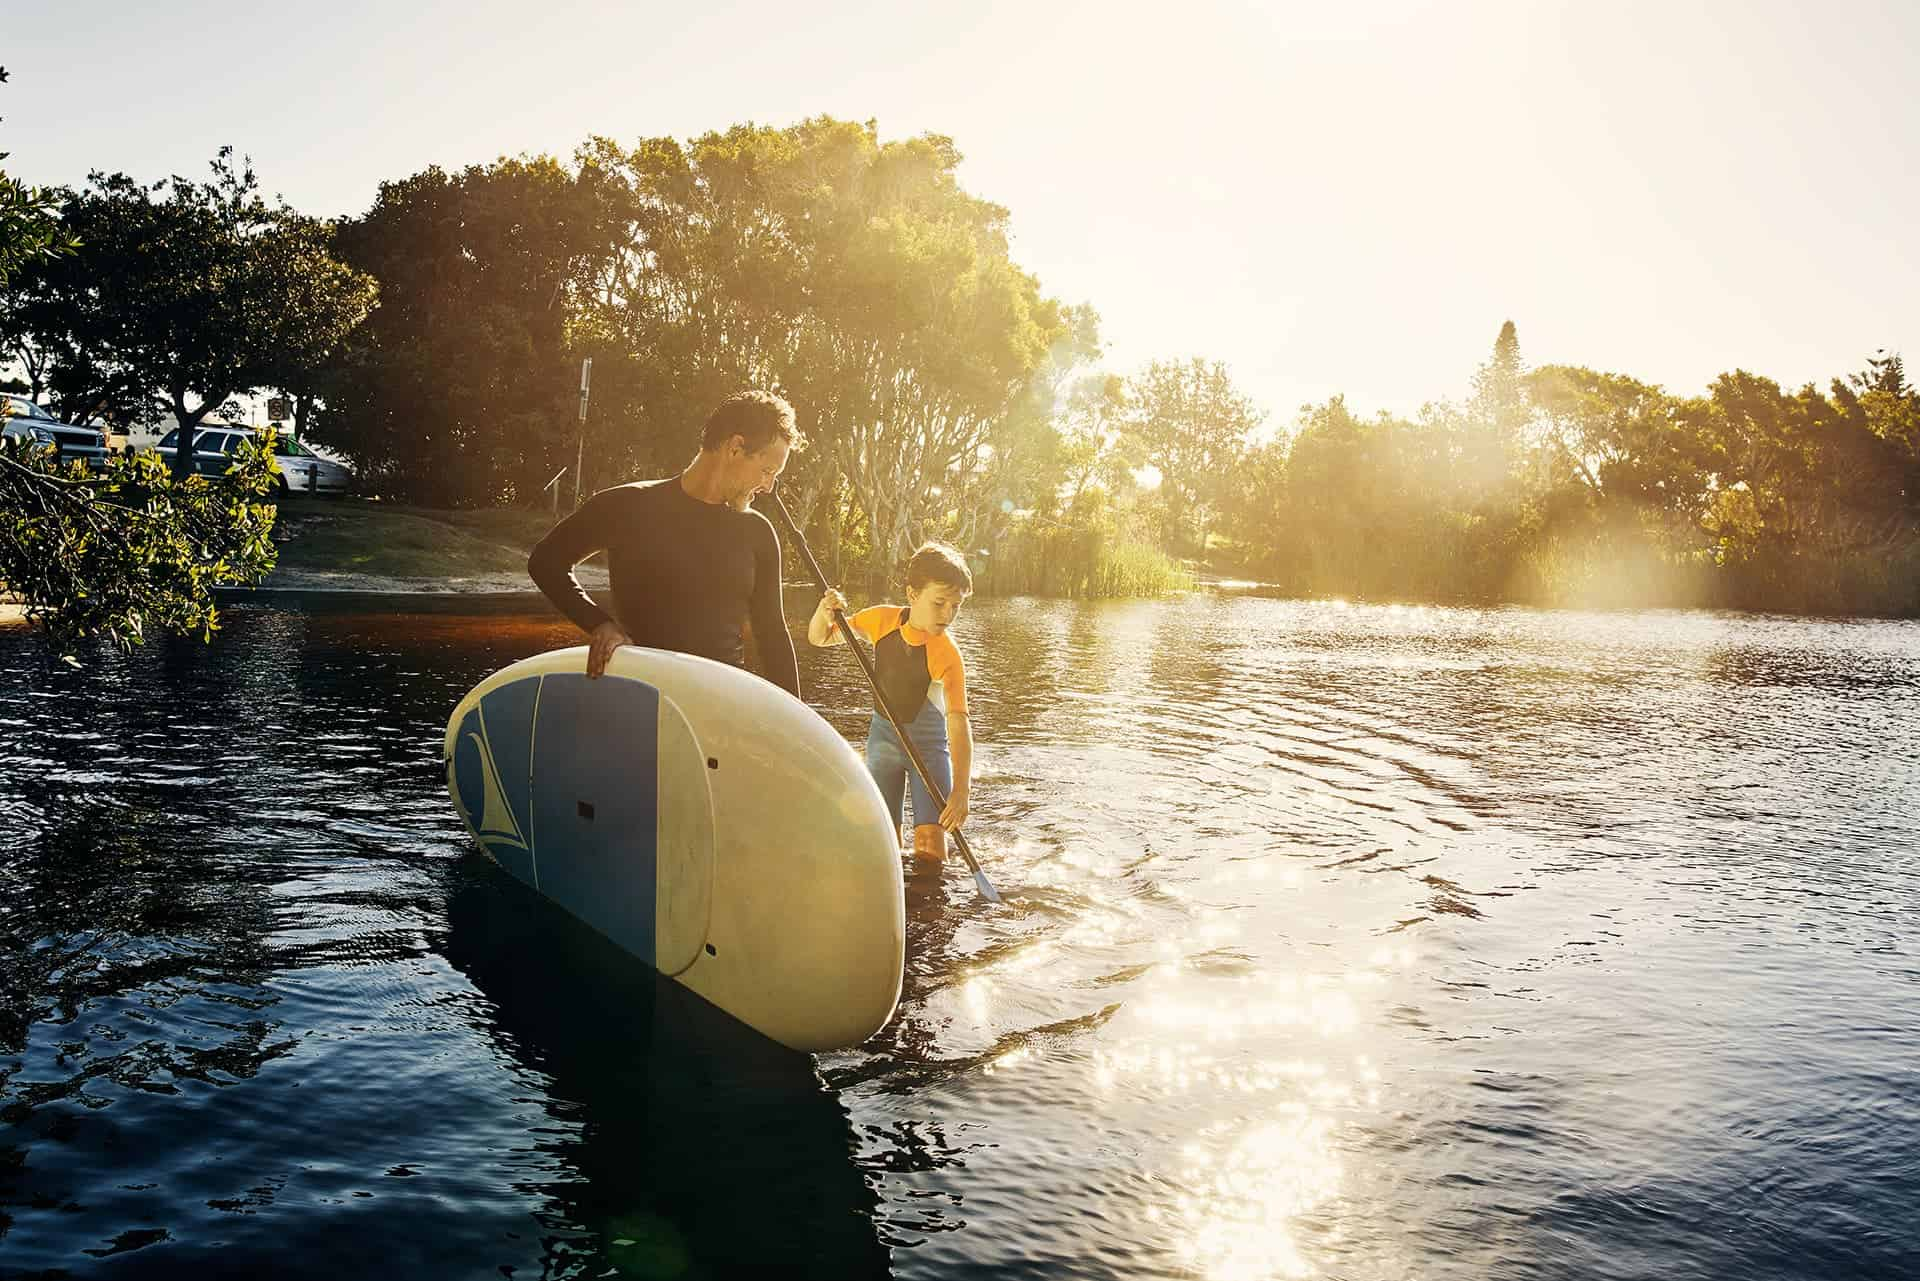 Term life insurance for a father holding a stand up paddle board while his son holds the paddle